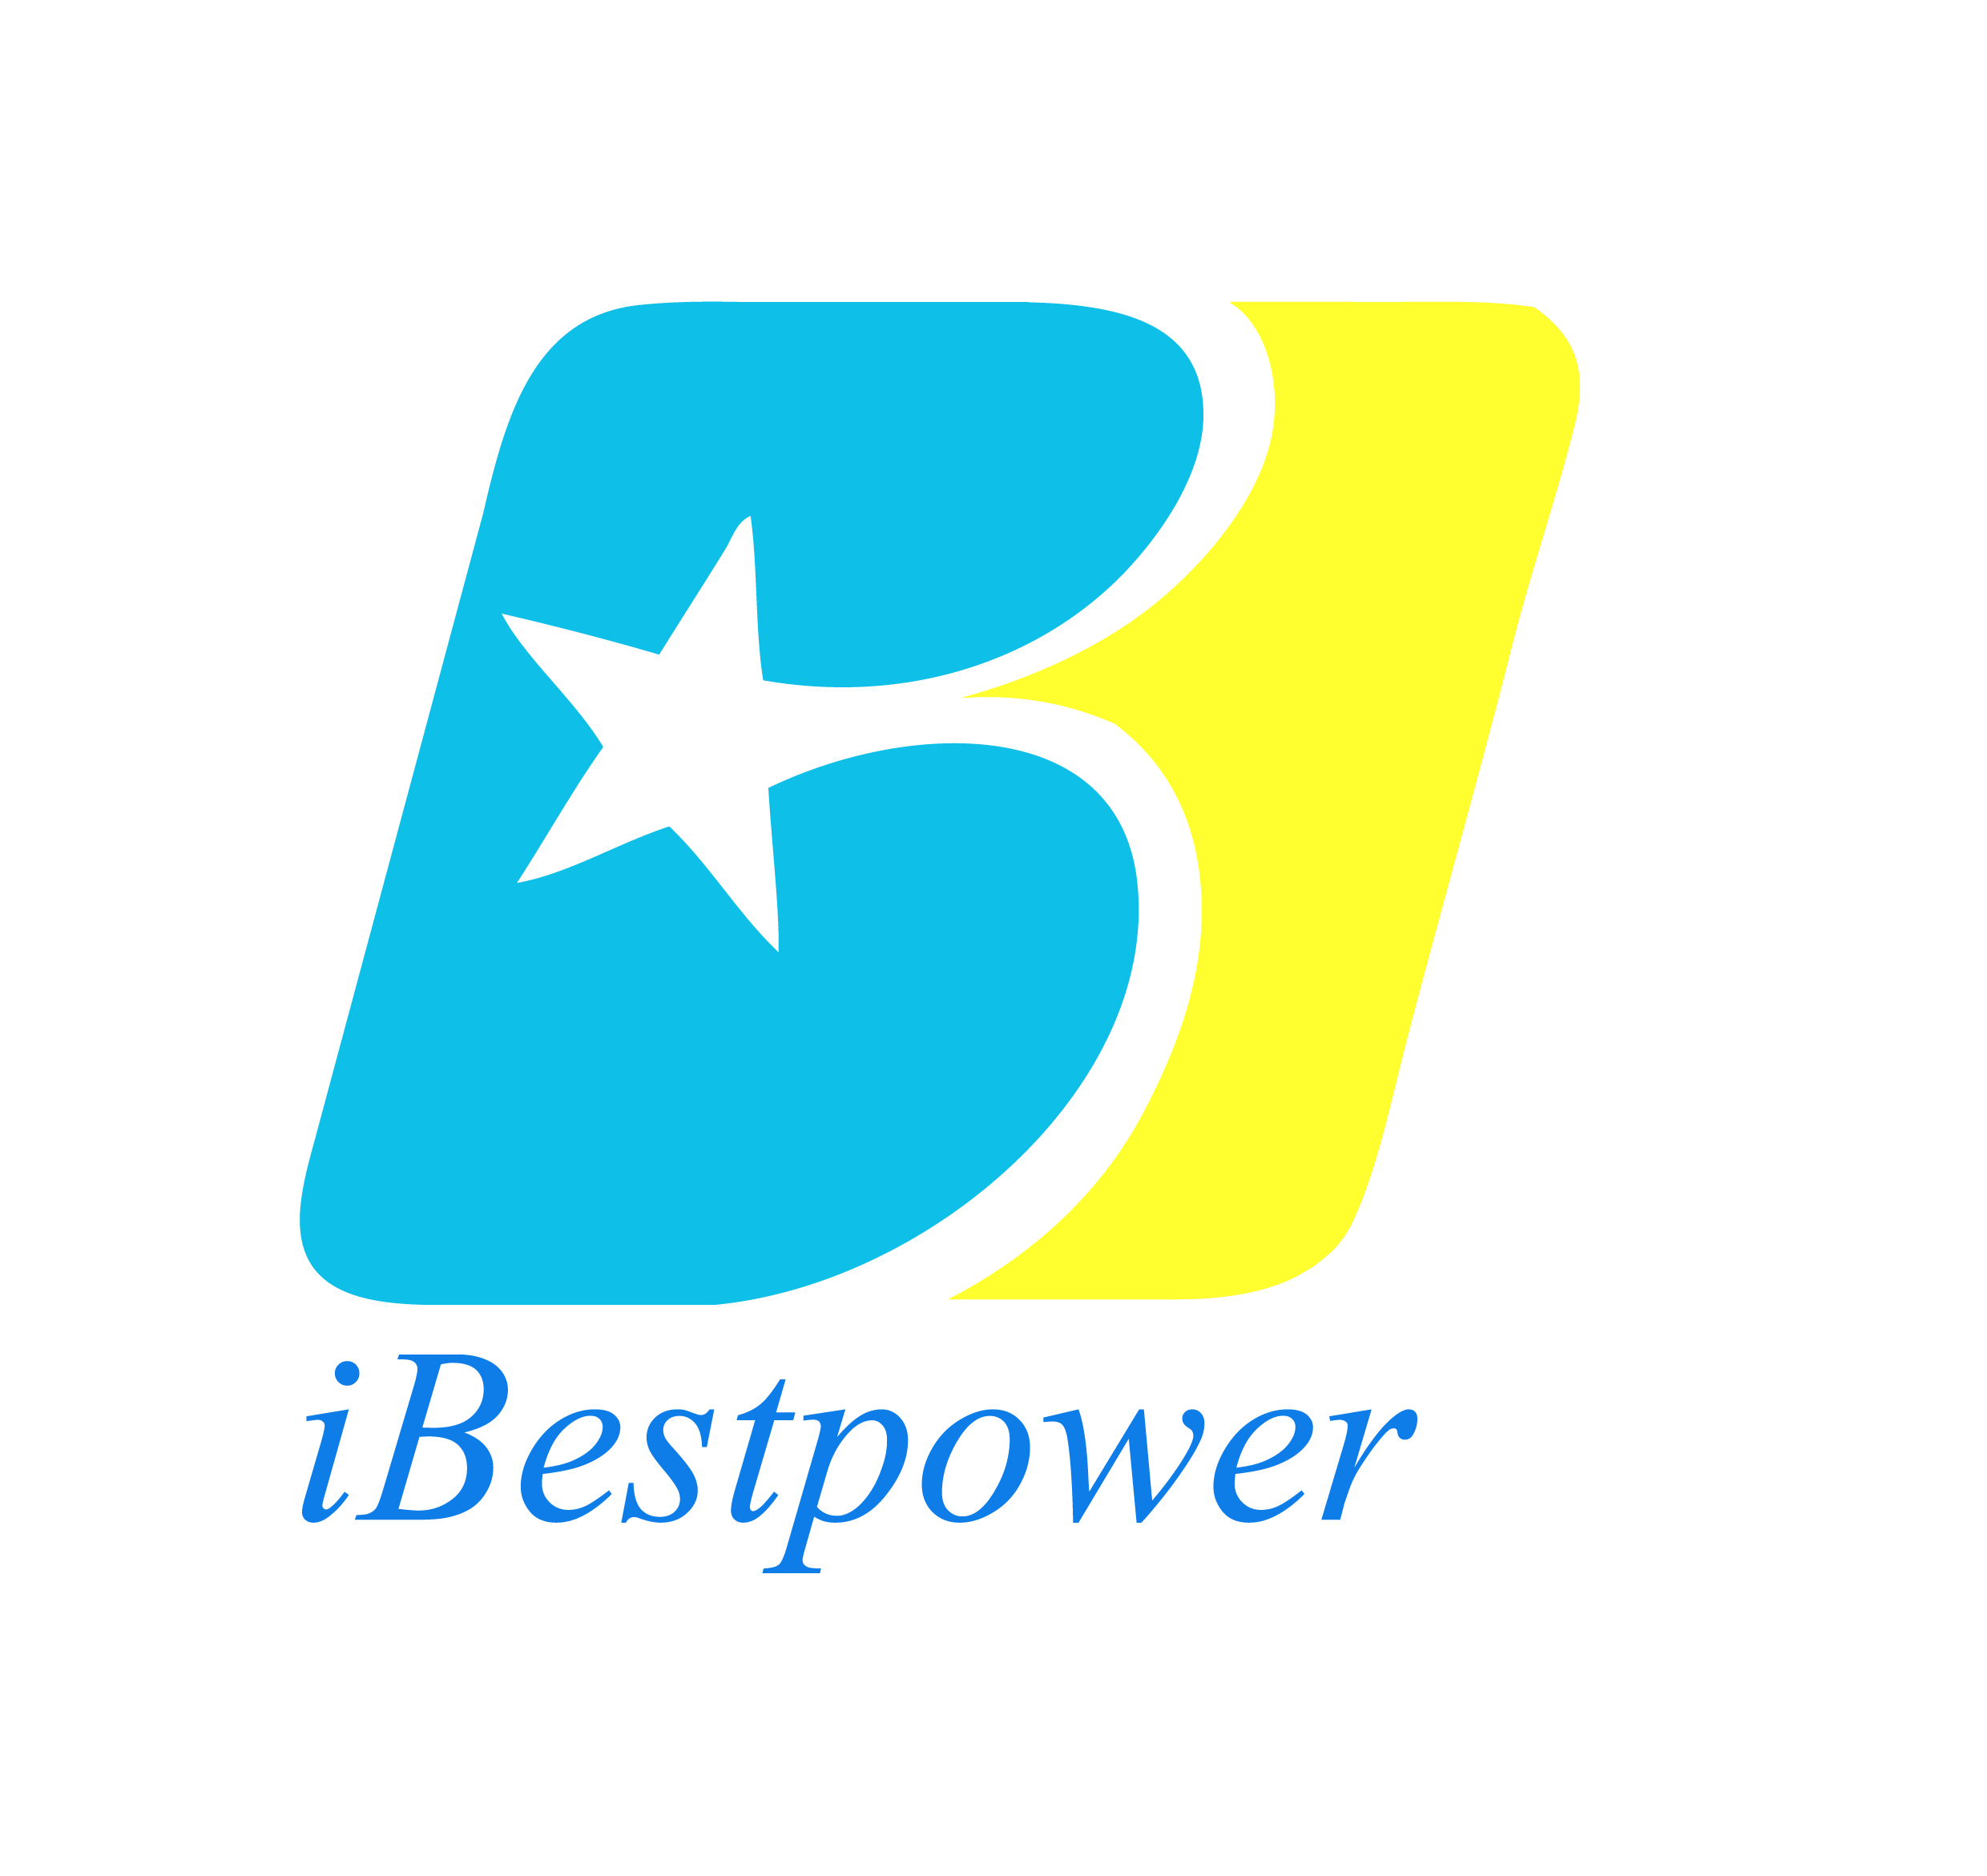 Beijing Bestpower Technology & Engineering Co., Ltd.